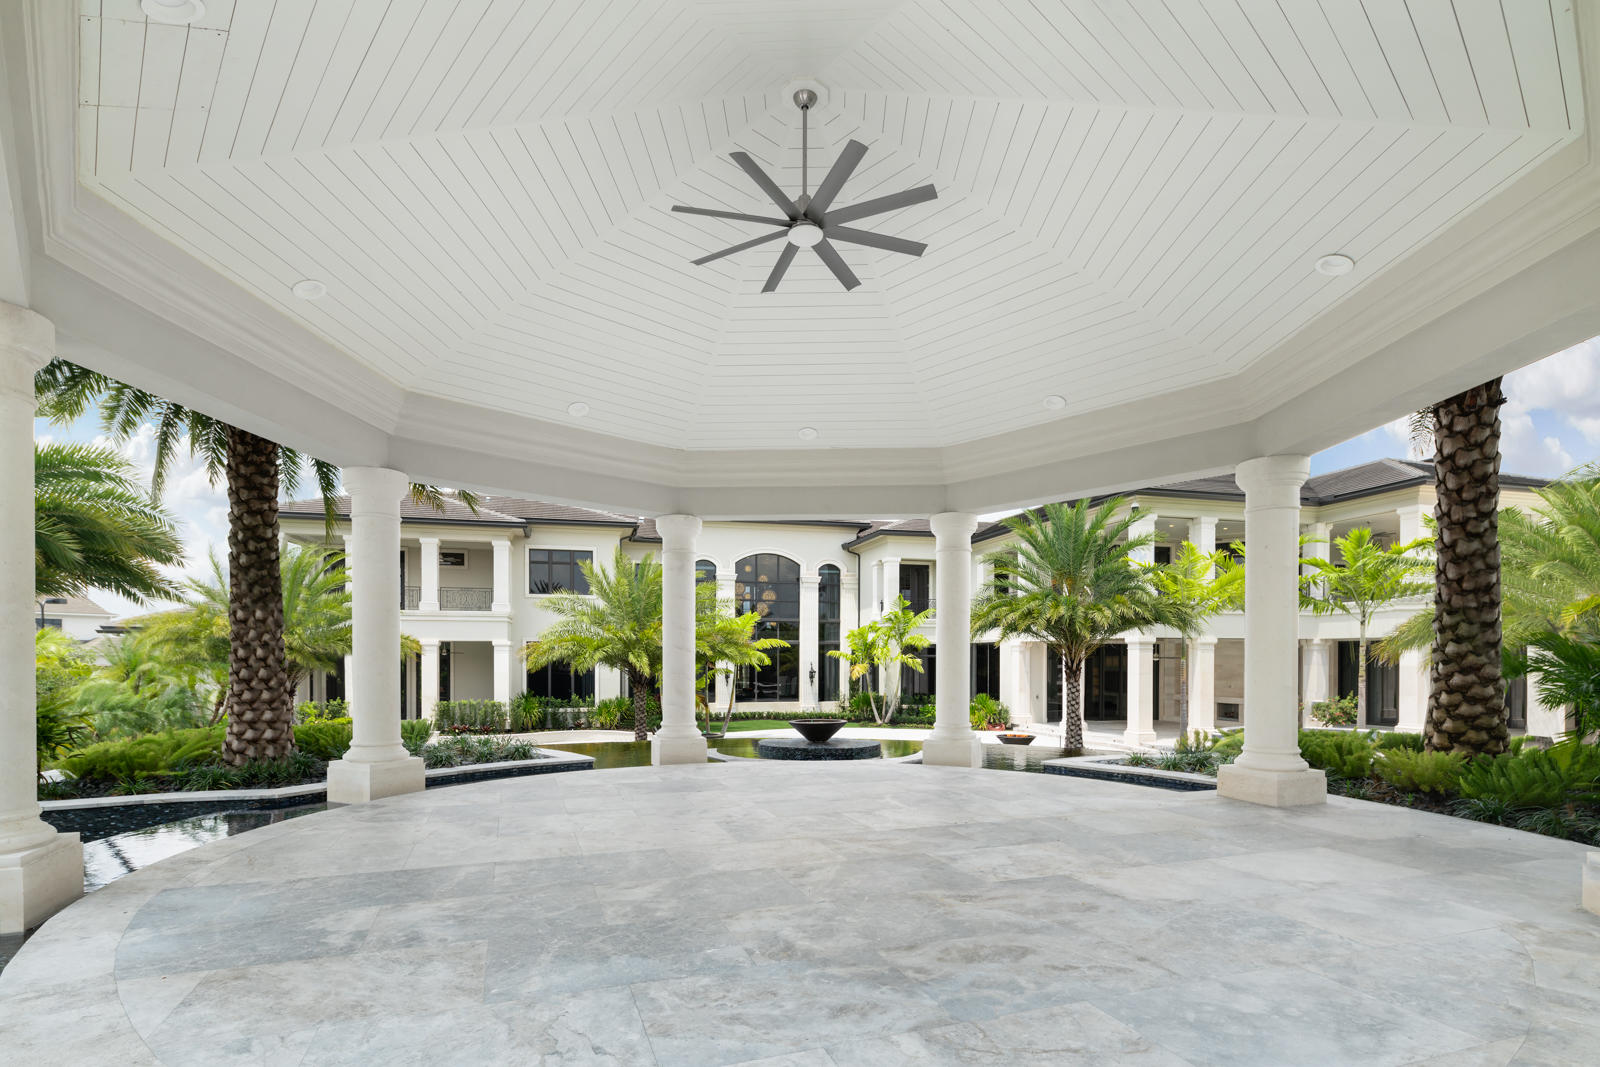 9192 Rockybrook Way, Delray Beach, Florida 33446, 7 Bedrooms Bedrooms, ,11 BathroomsBathrooms,Residential,for Sale,Rockybrook,RX-10620941, , , ,for Sale